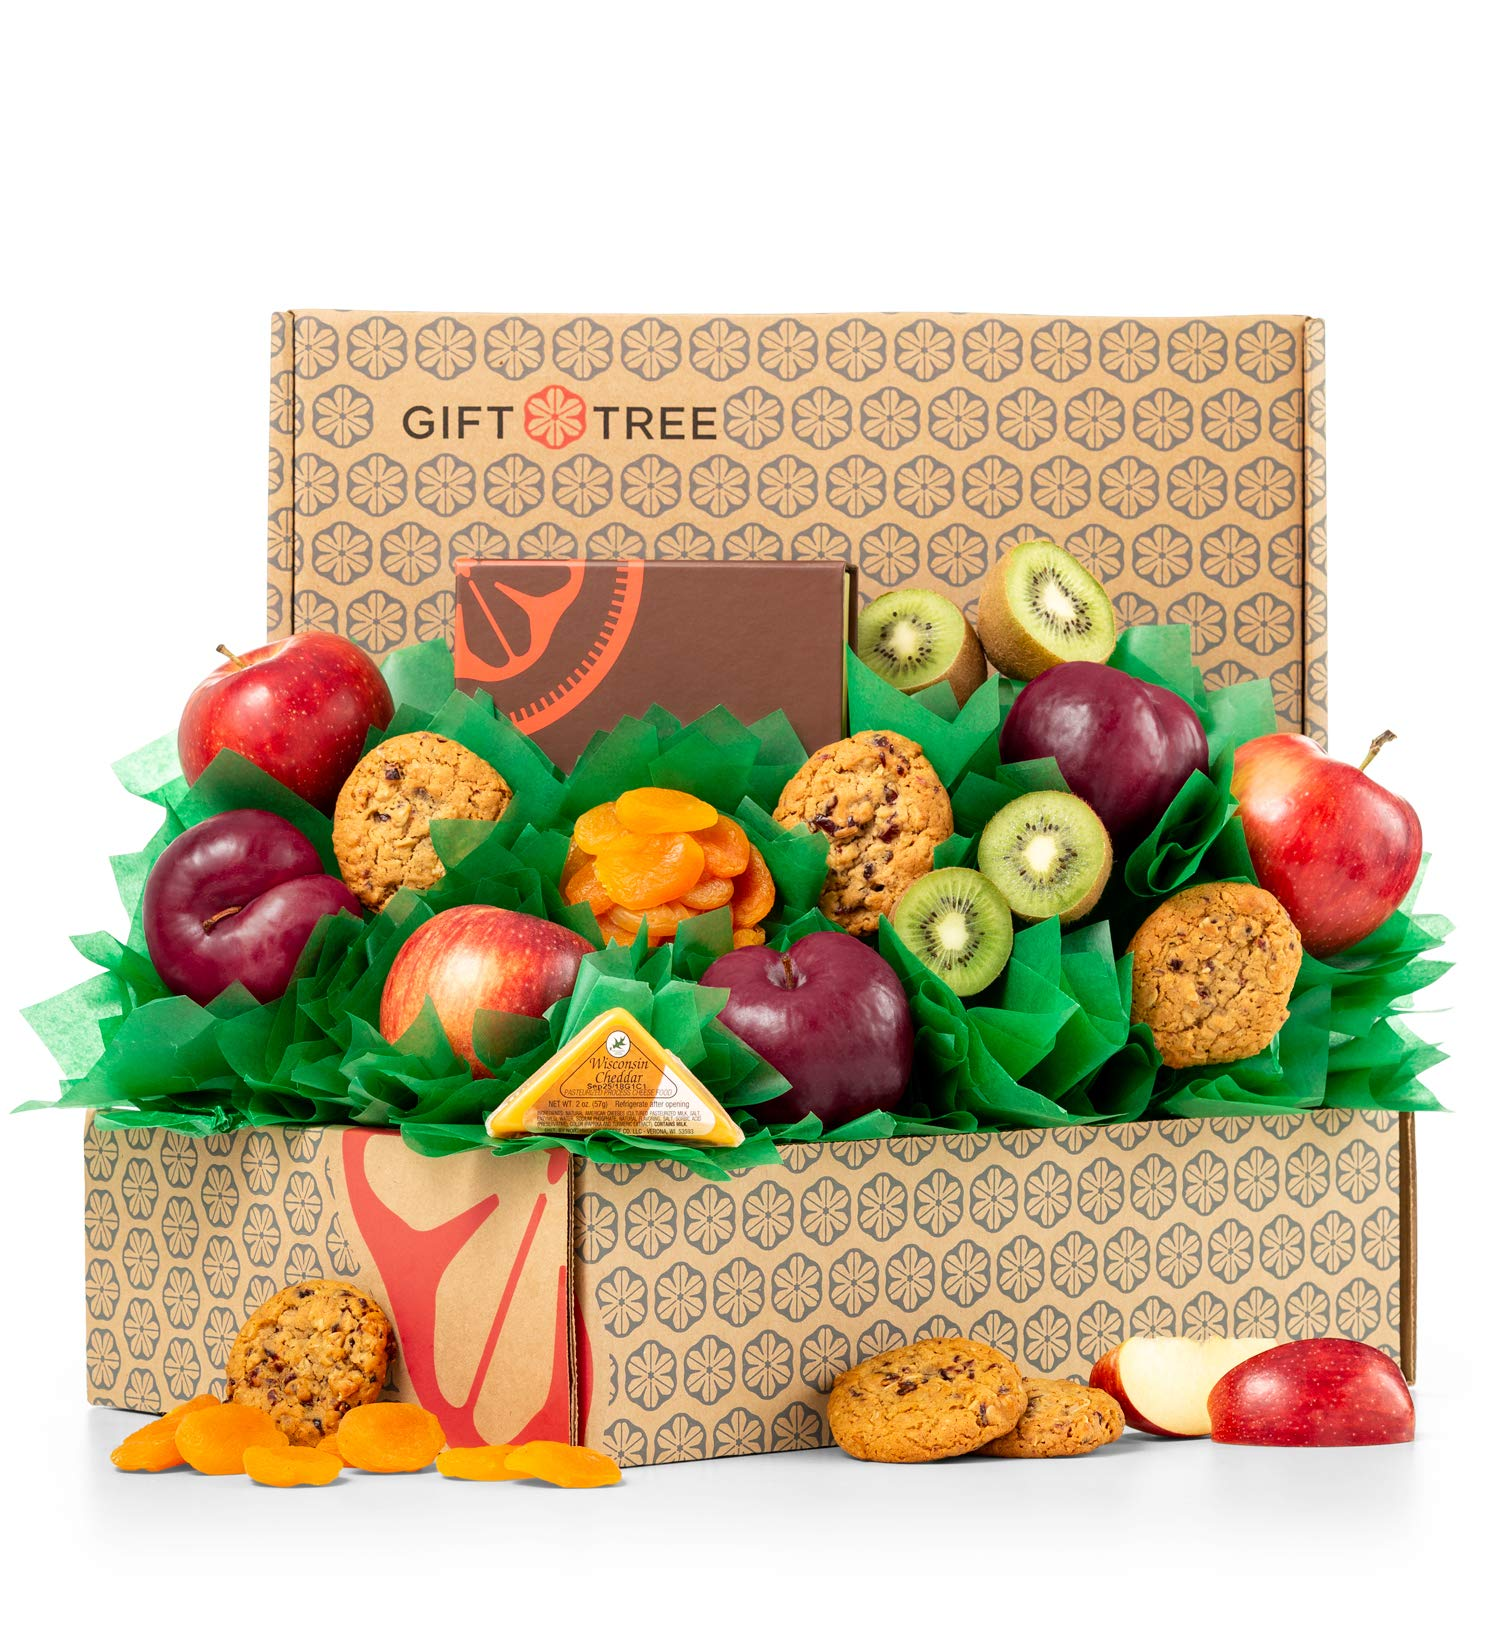 GiftTree Fresh Fruit & Cookies Gift Basket | Box Includes Apples, Kiwis, Plums, Oatmeal Cookies, Wisconsin Cheddar Cheese & more | Perfect Thank You, Birthday, and Holiday Present